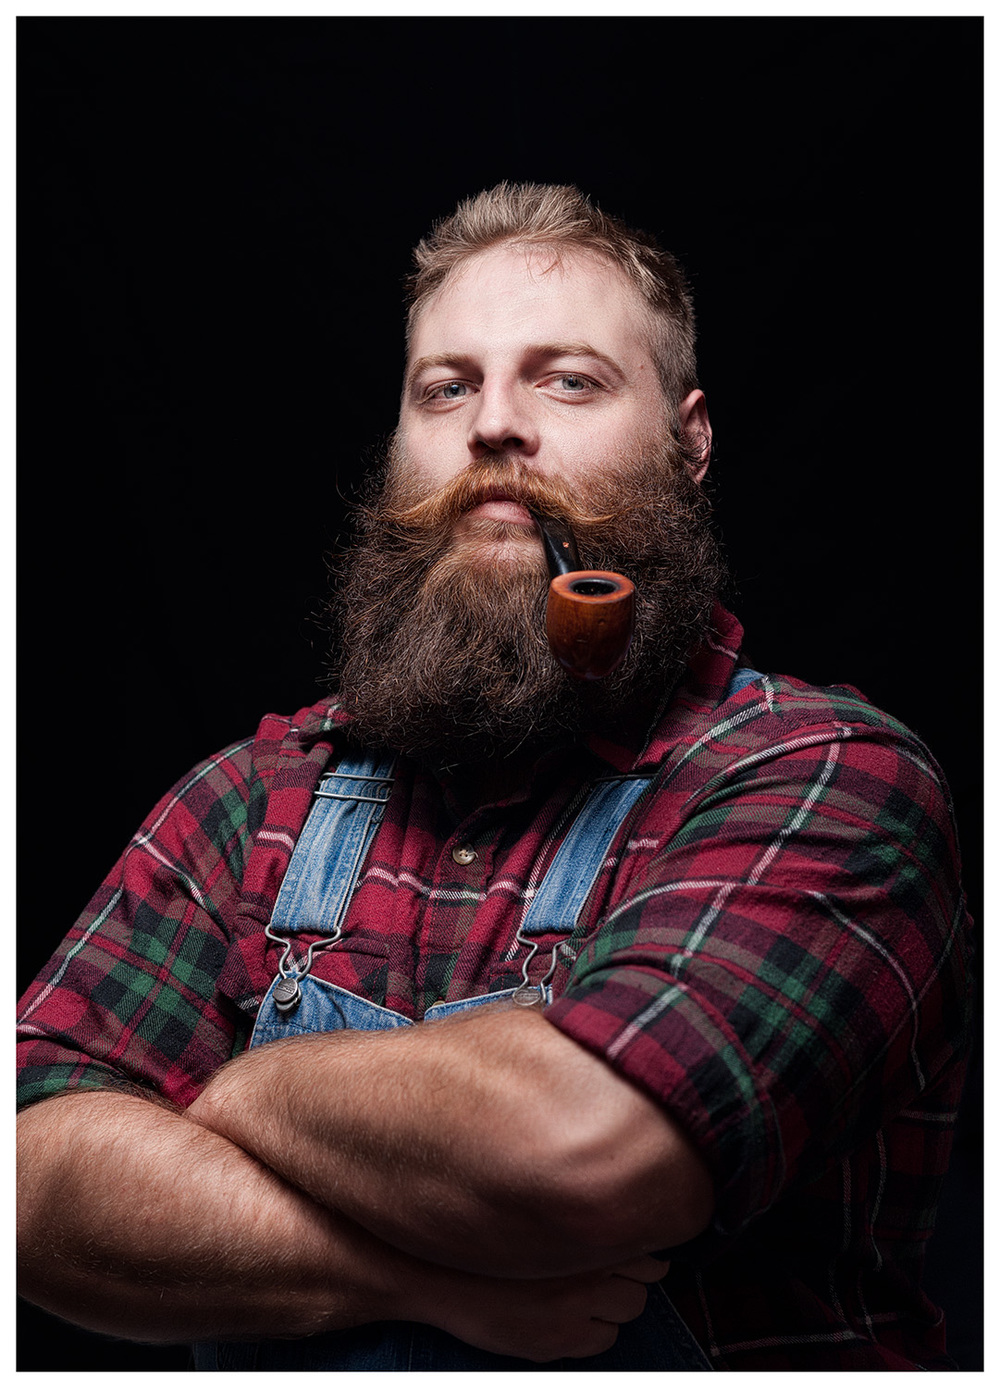 """The first person I approached for what would be the start of """"Dudes with Beards"""" and second dude I photographed."""